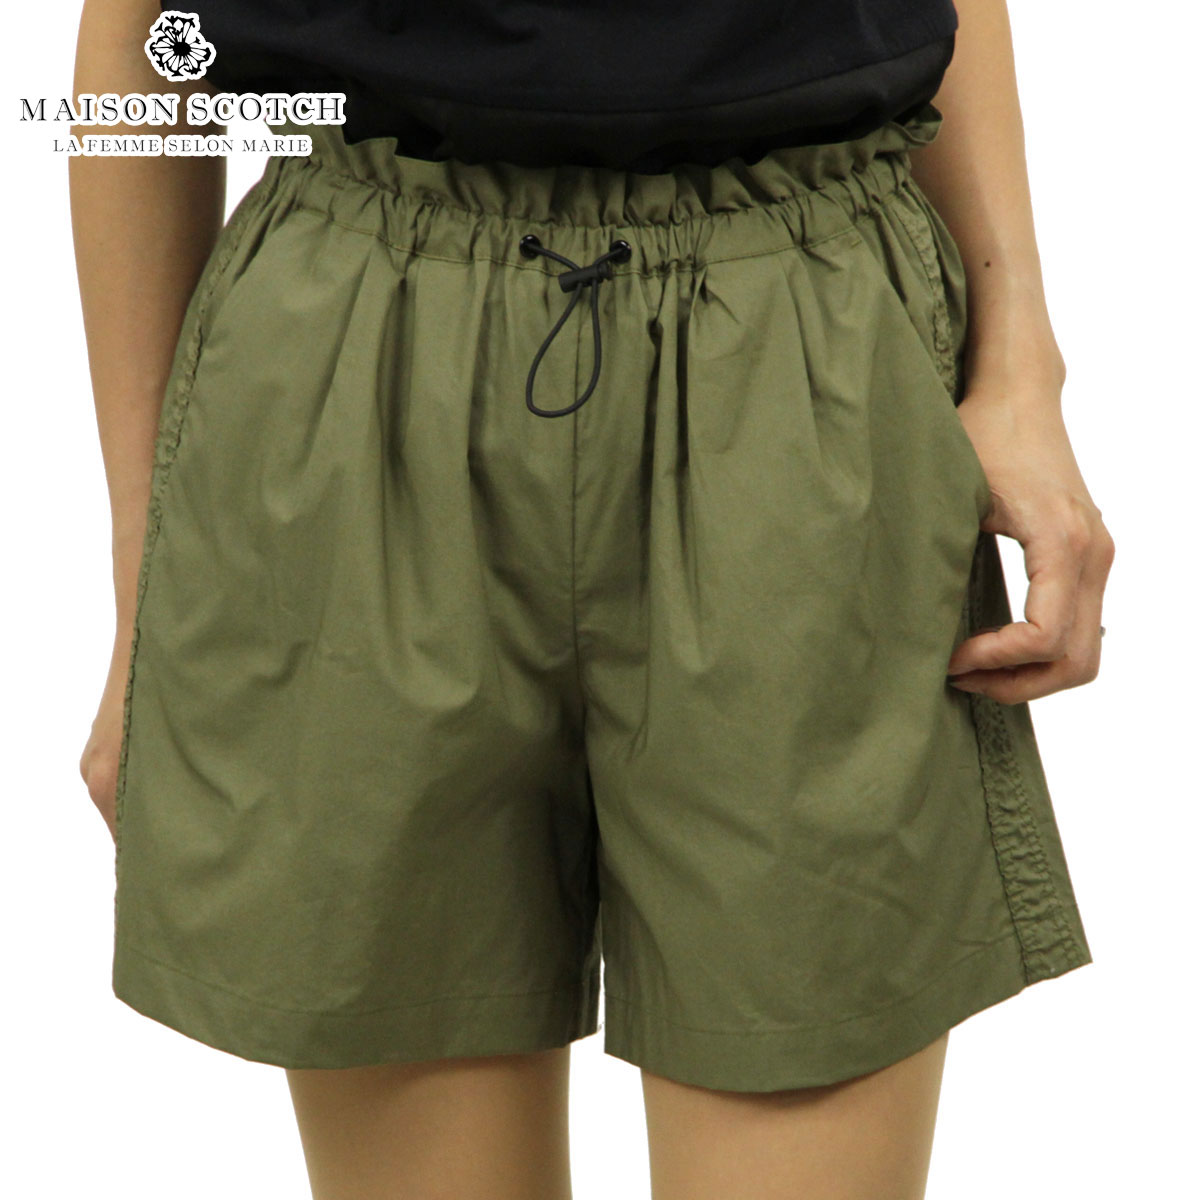 メゾンスコッチ MAISON SCOTCH 正規販売店 レディース ショートパンツ TECHNICAL POPLIN PAPERBAG SHORTS WITH ROUCHED SIDE SEAM 143789 15 52509 ARMY